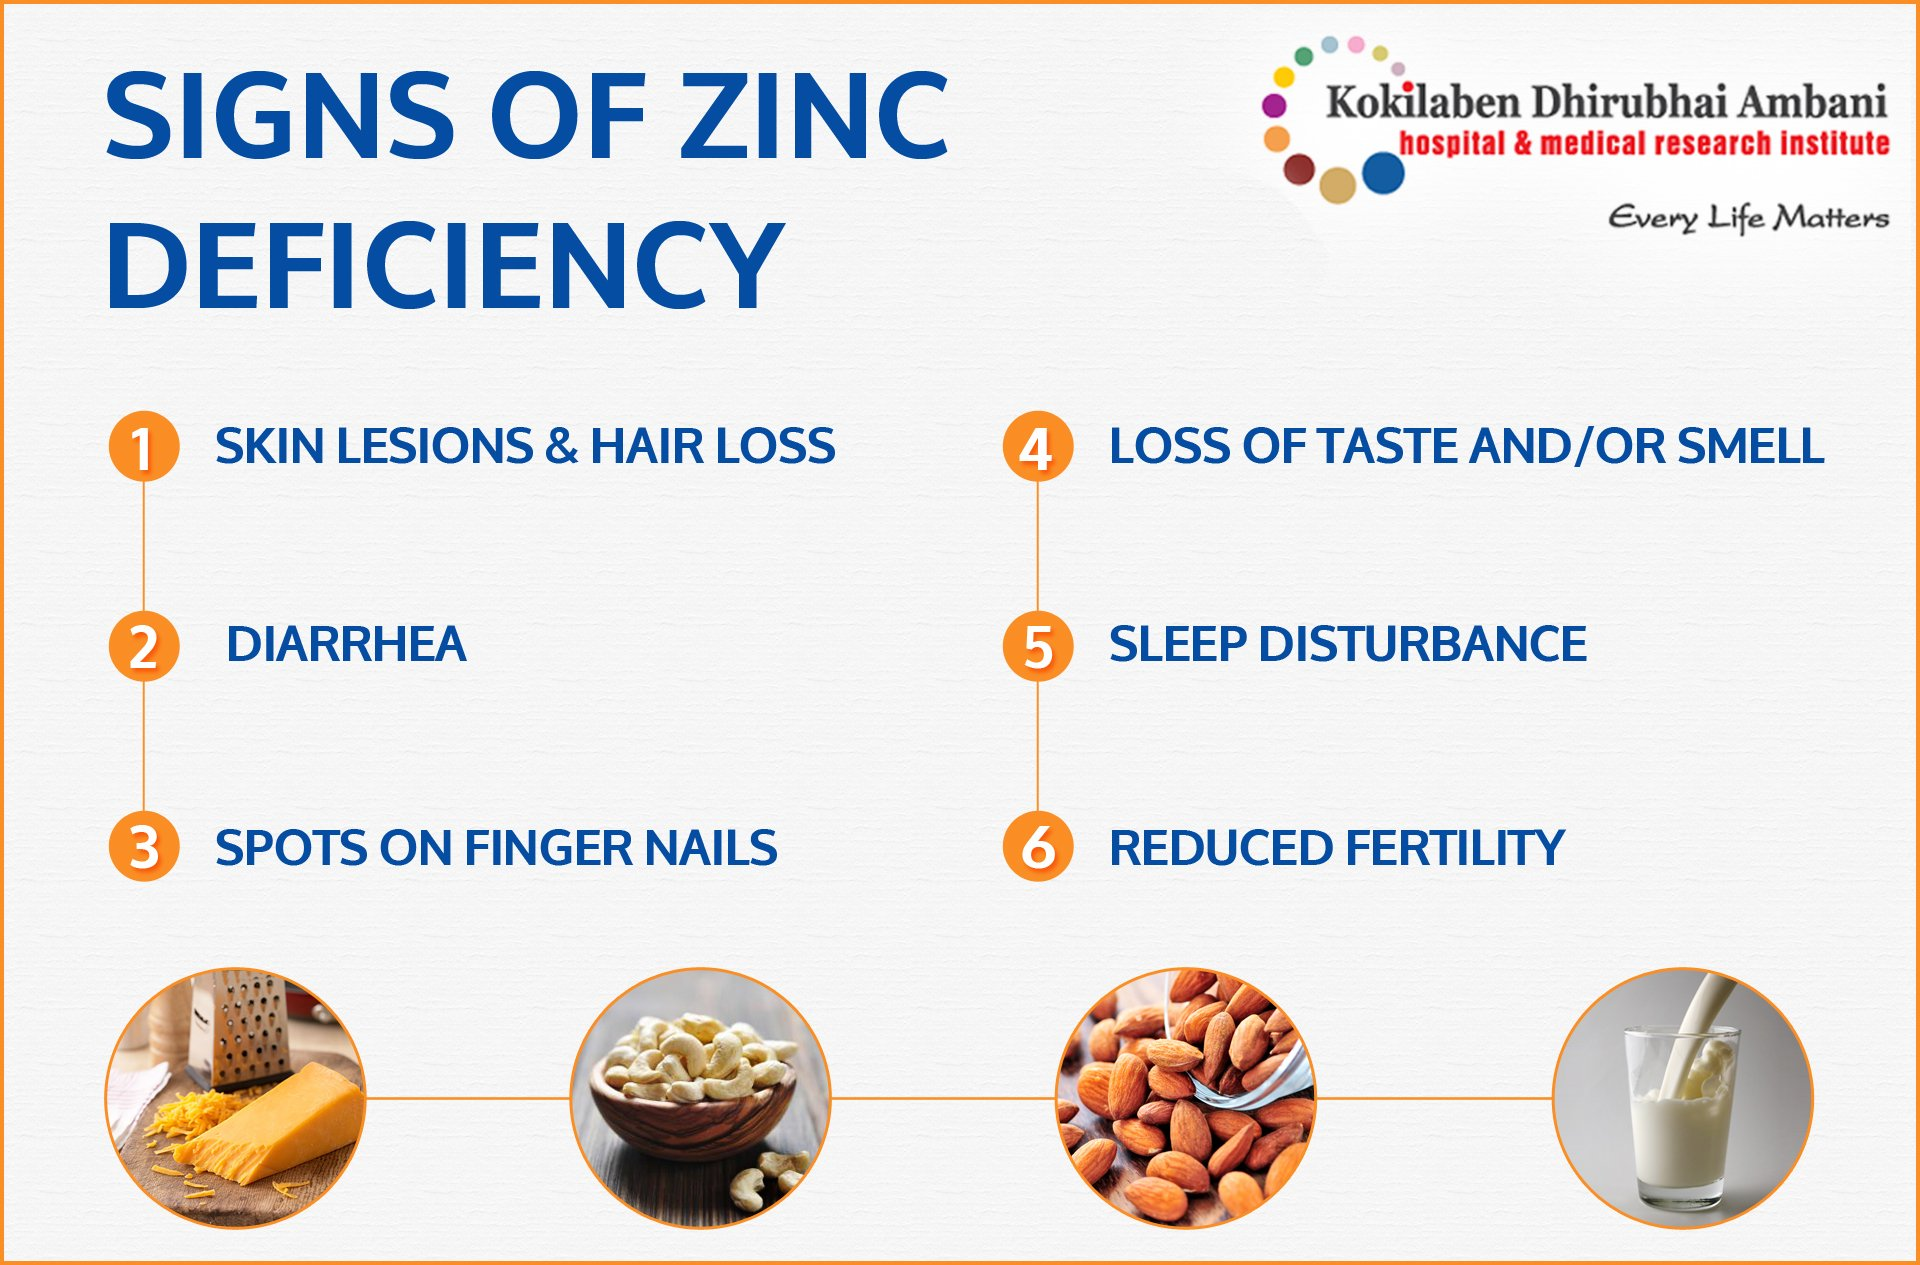 Signs of Zinc Deficiency